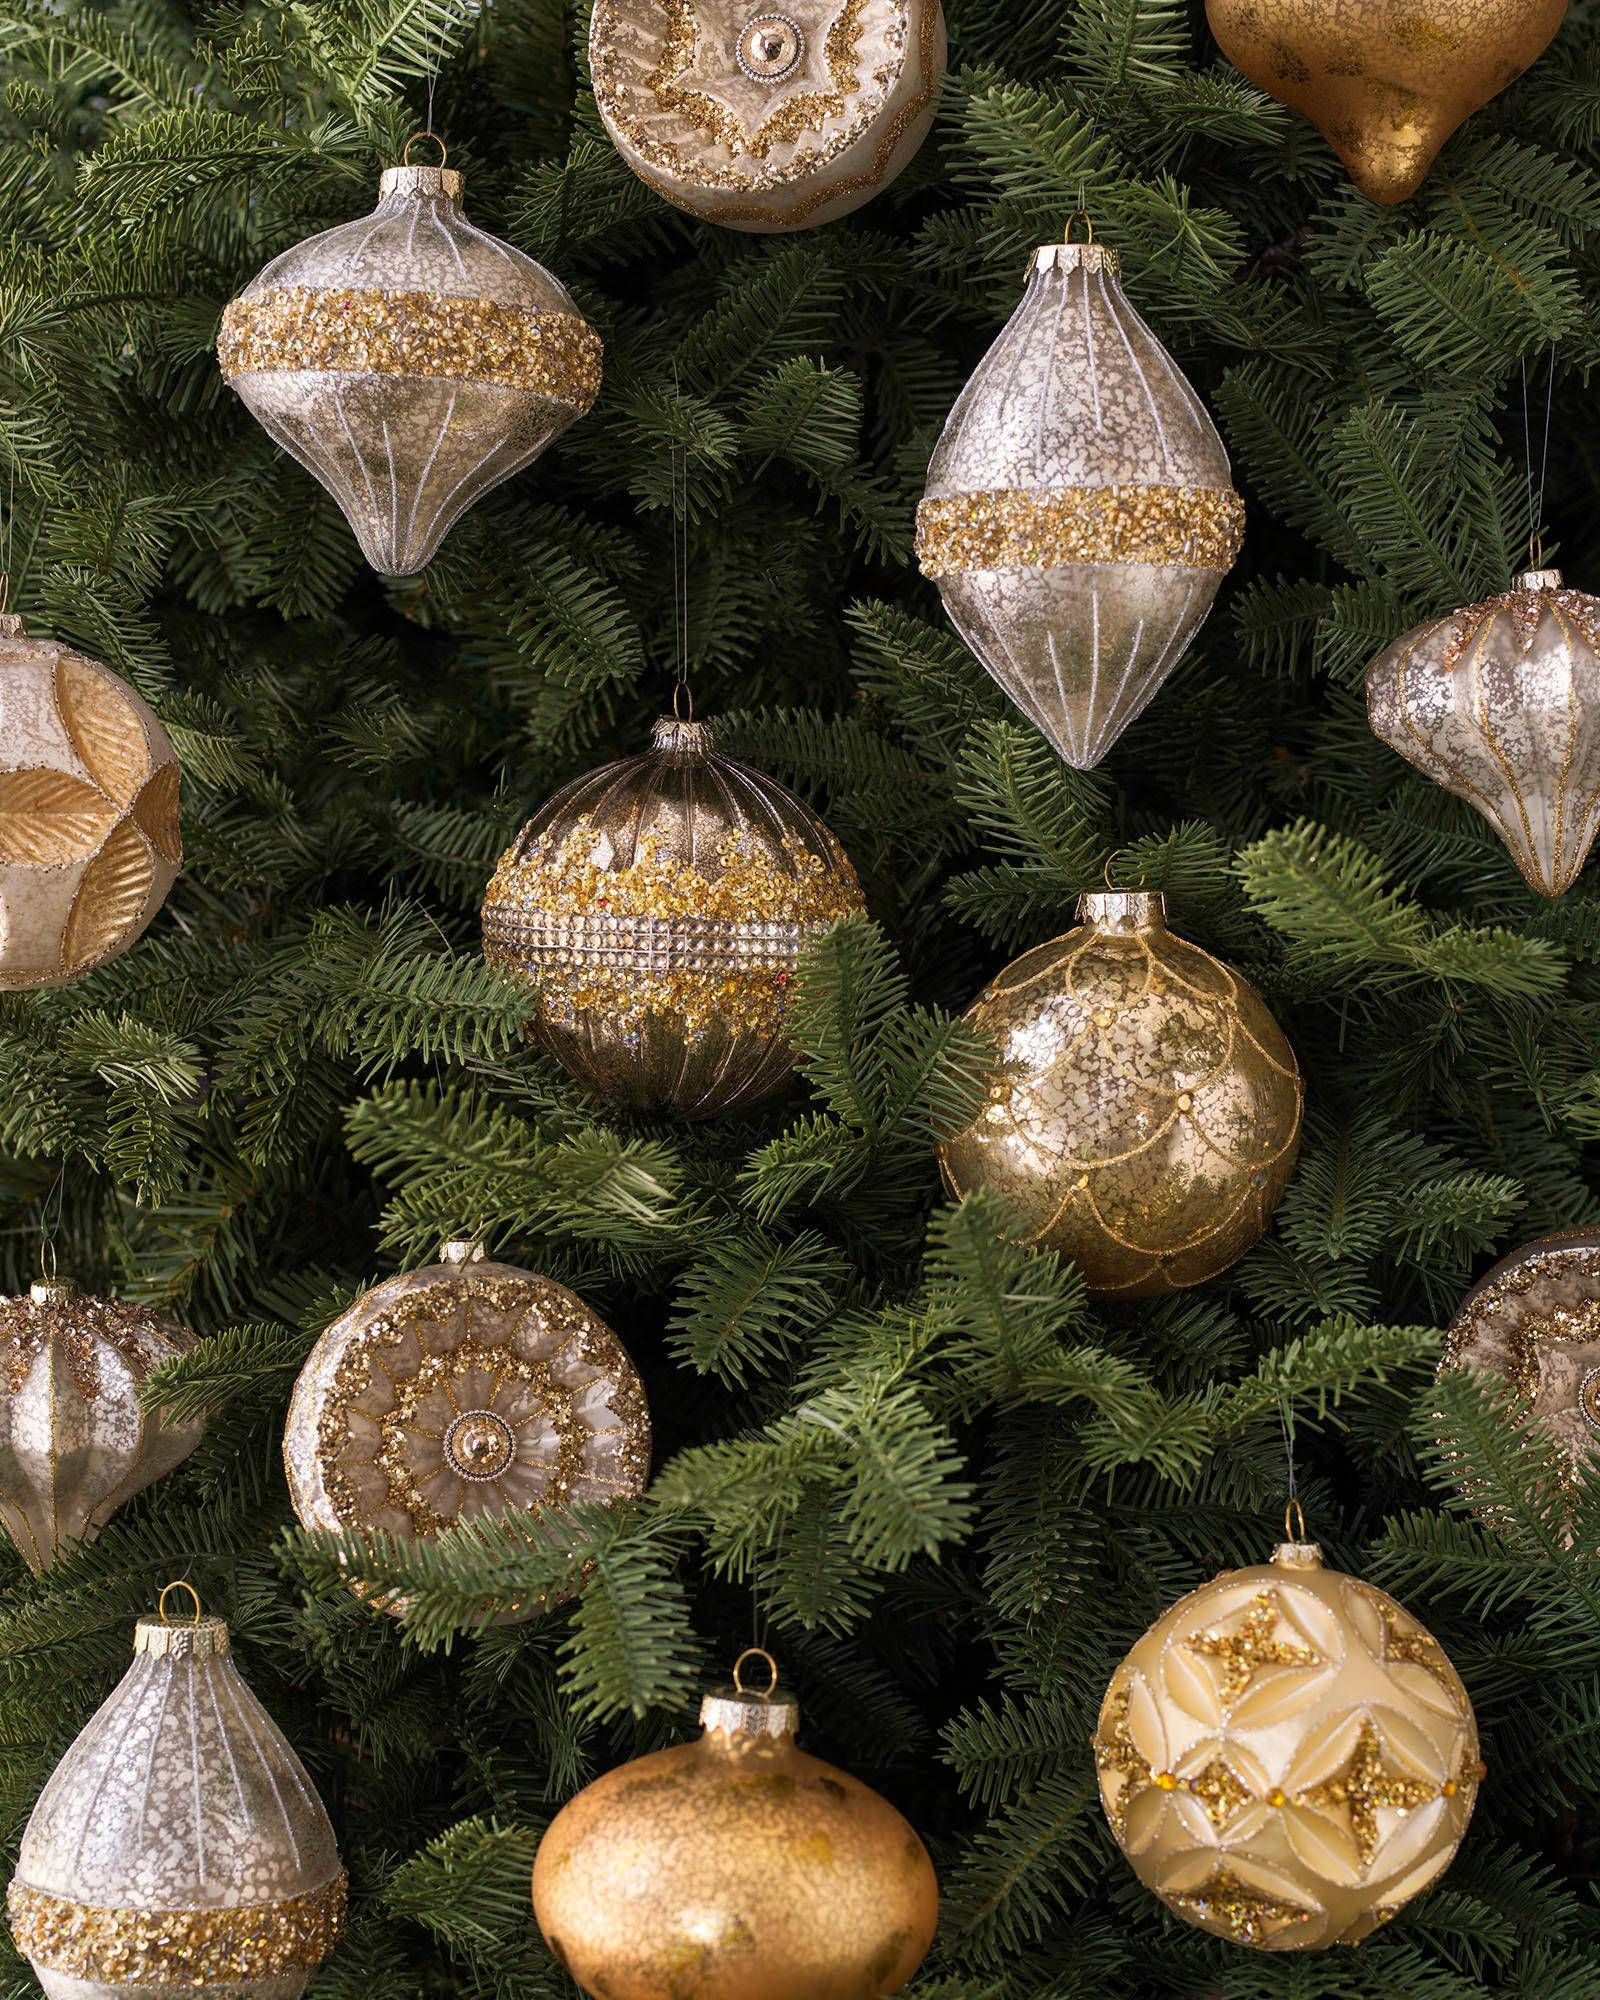 Silver And Gold Christmas Ornament Set Balsam Hill Gold Christmas Ornaments Christmas Ornaments Christmas Ornament Sets